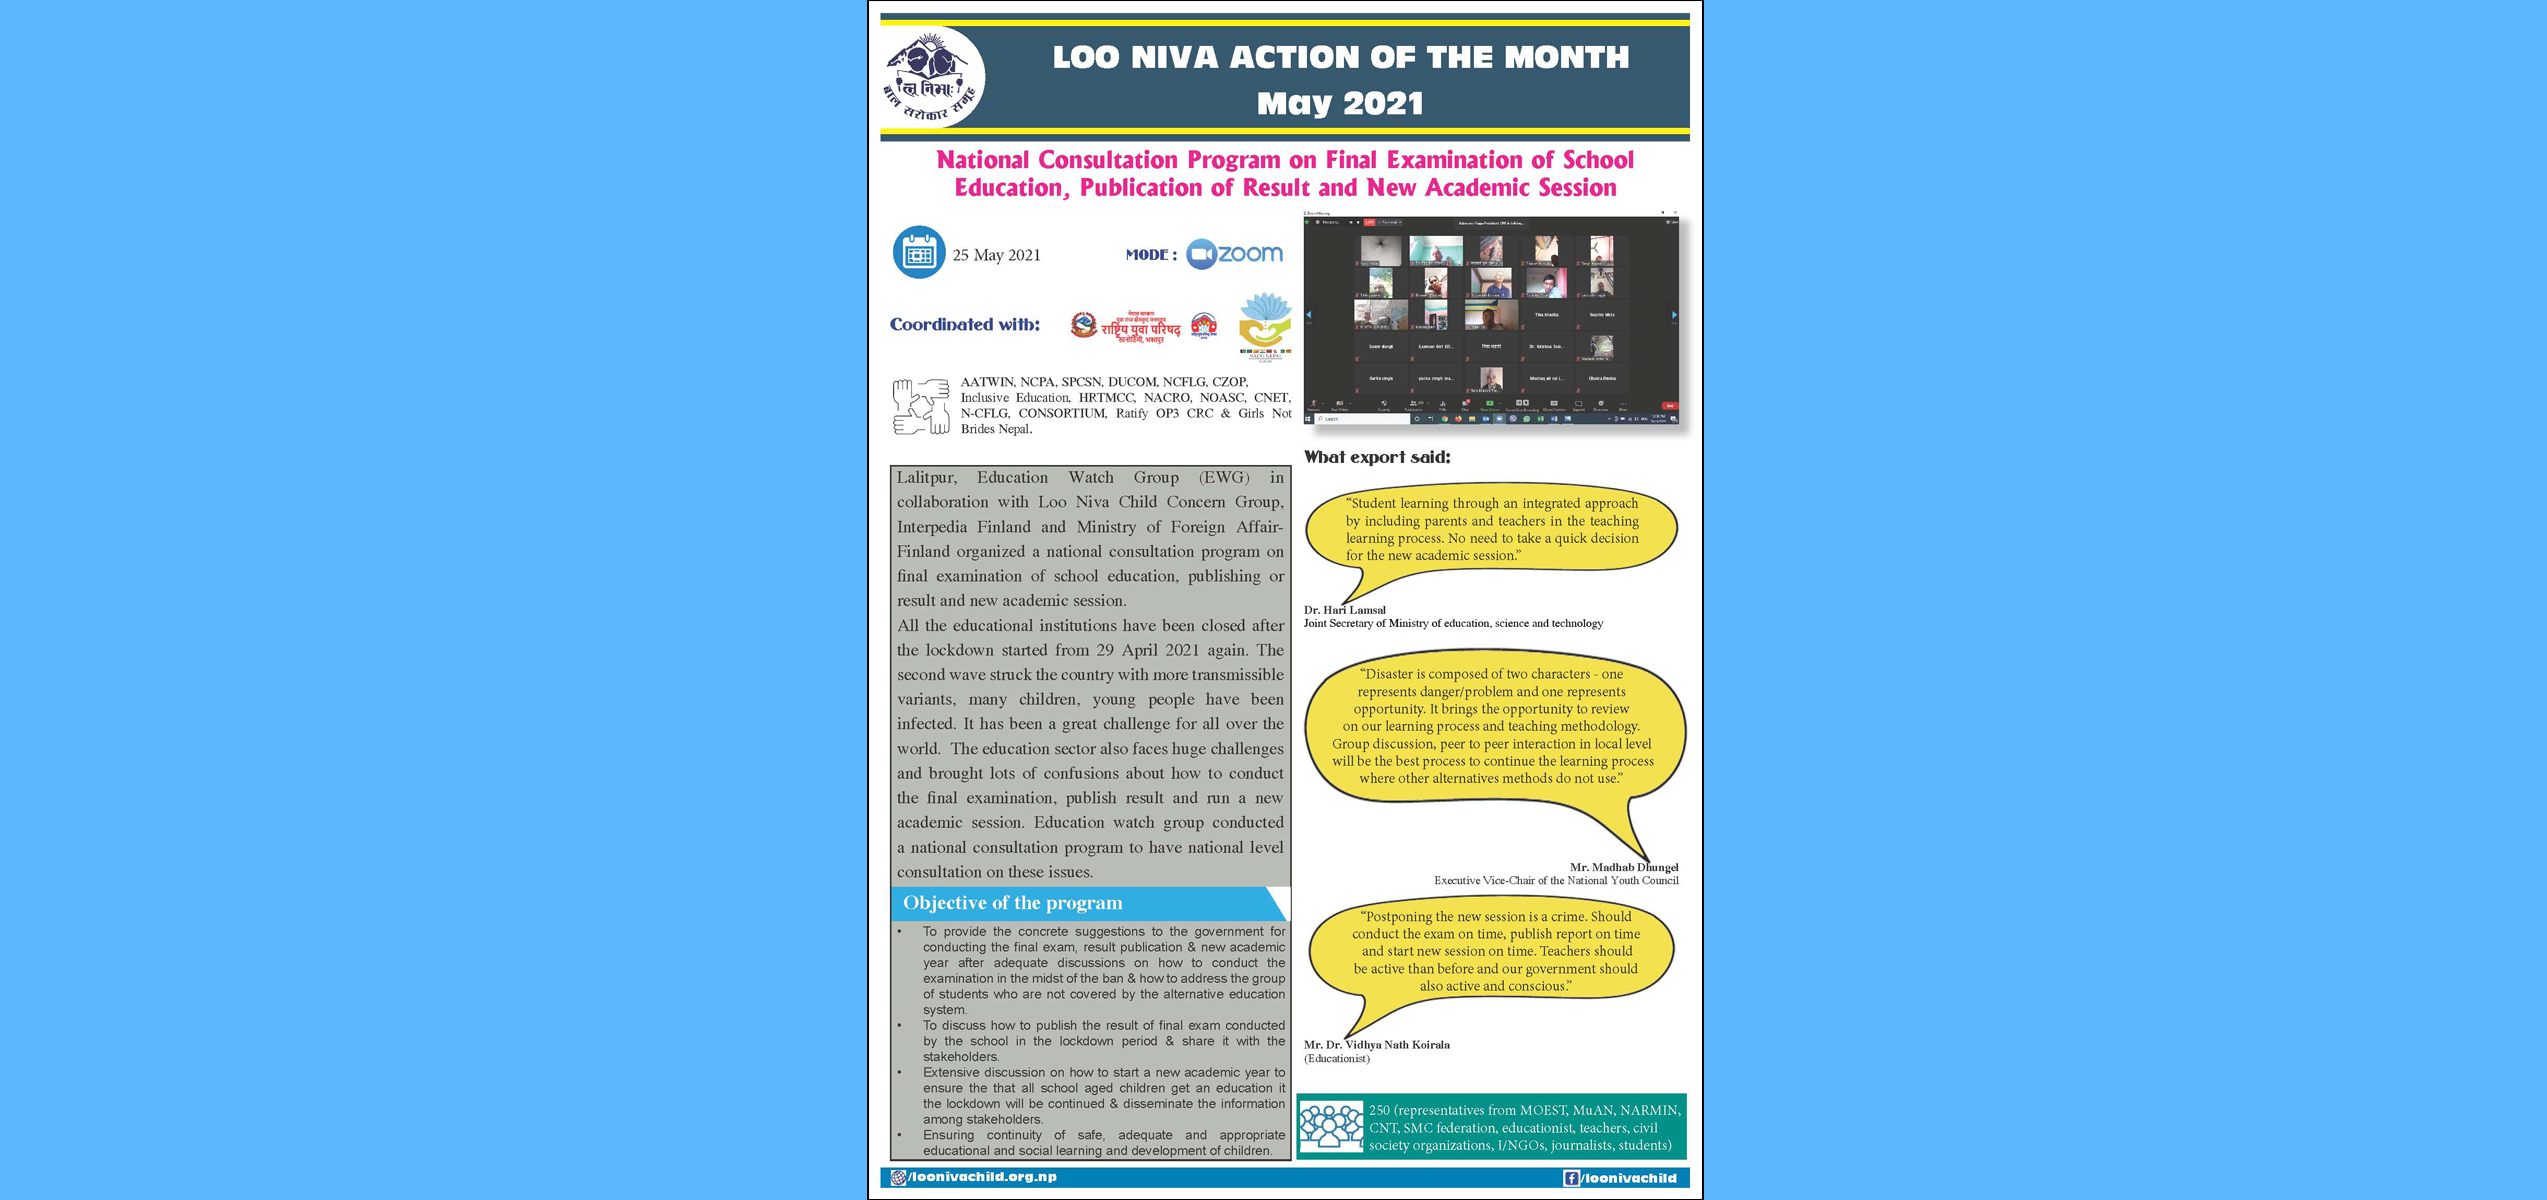 Action Of the Month May 2021